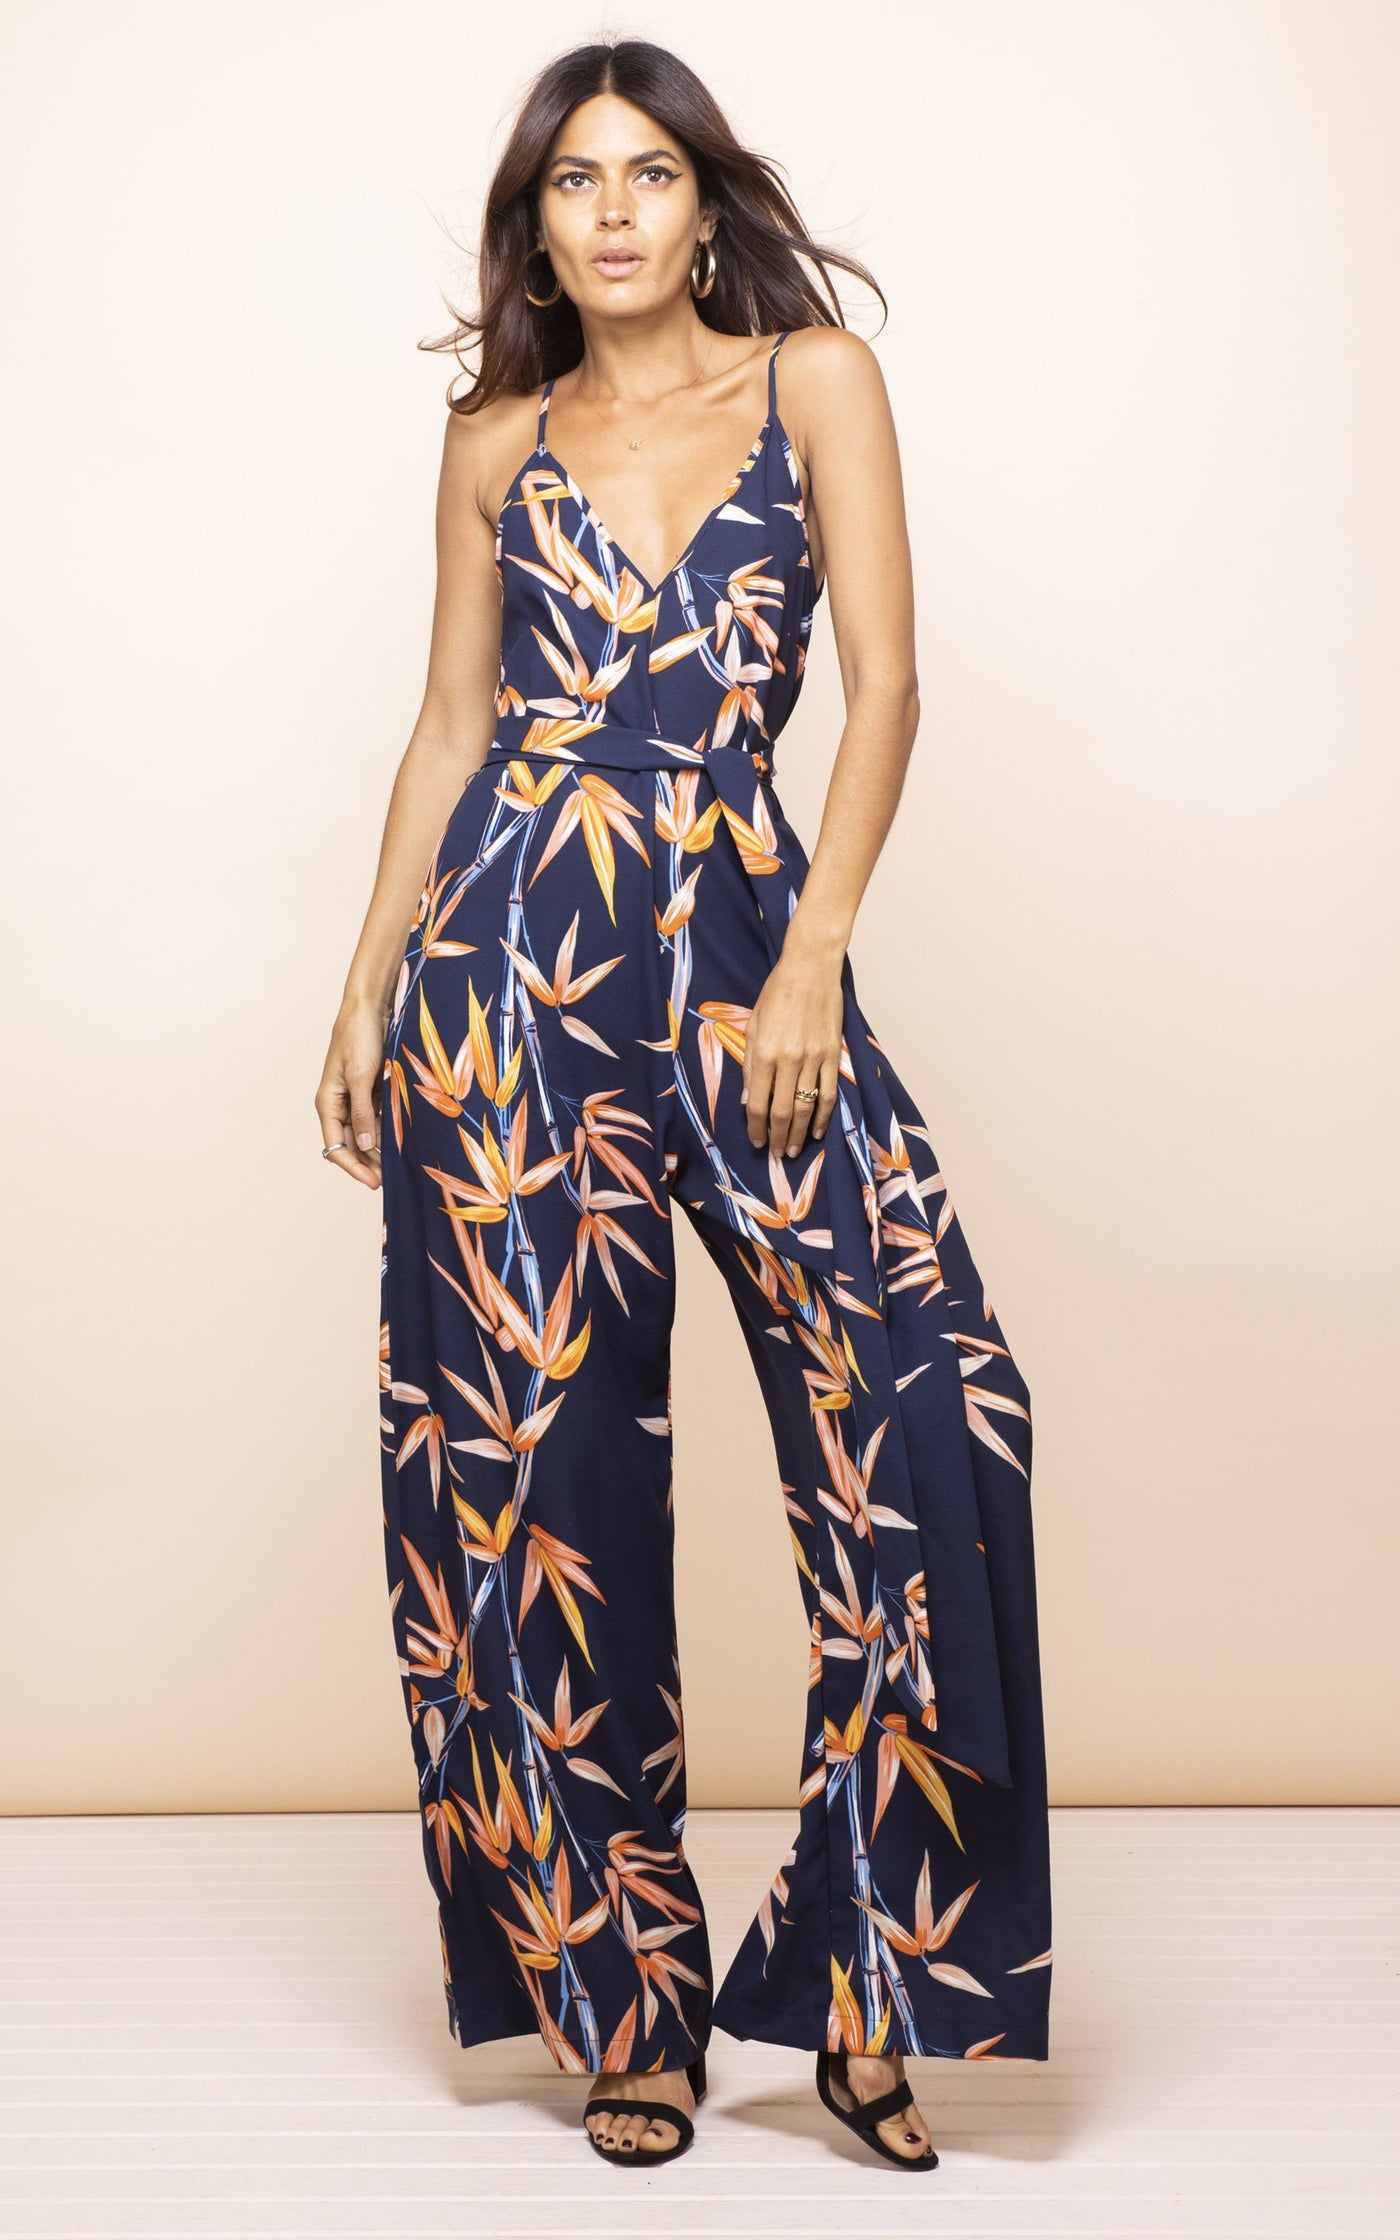 Dancing Leopard model faces forward and looks up wearing Gabriella Jumpsuit in bamboo print